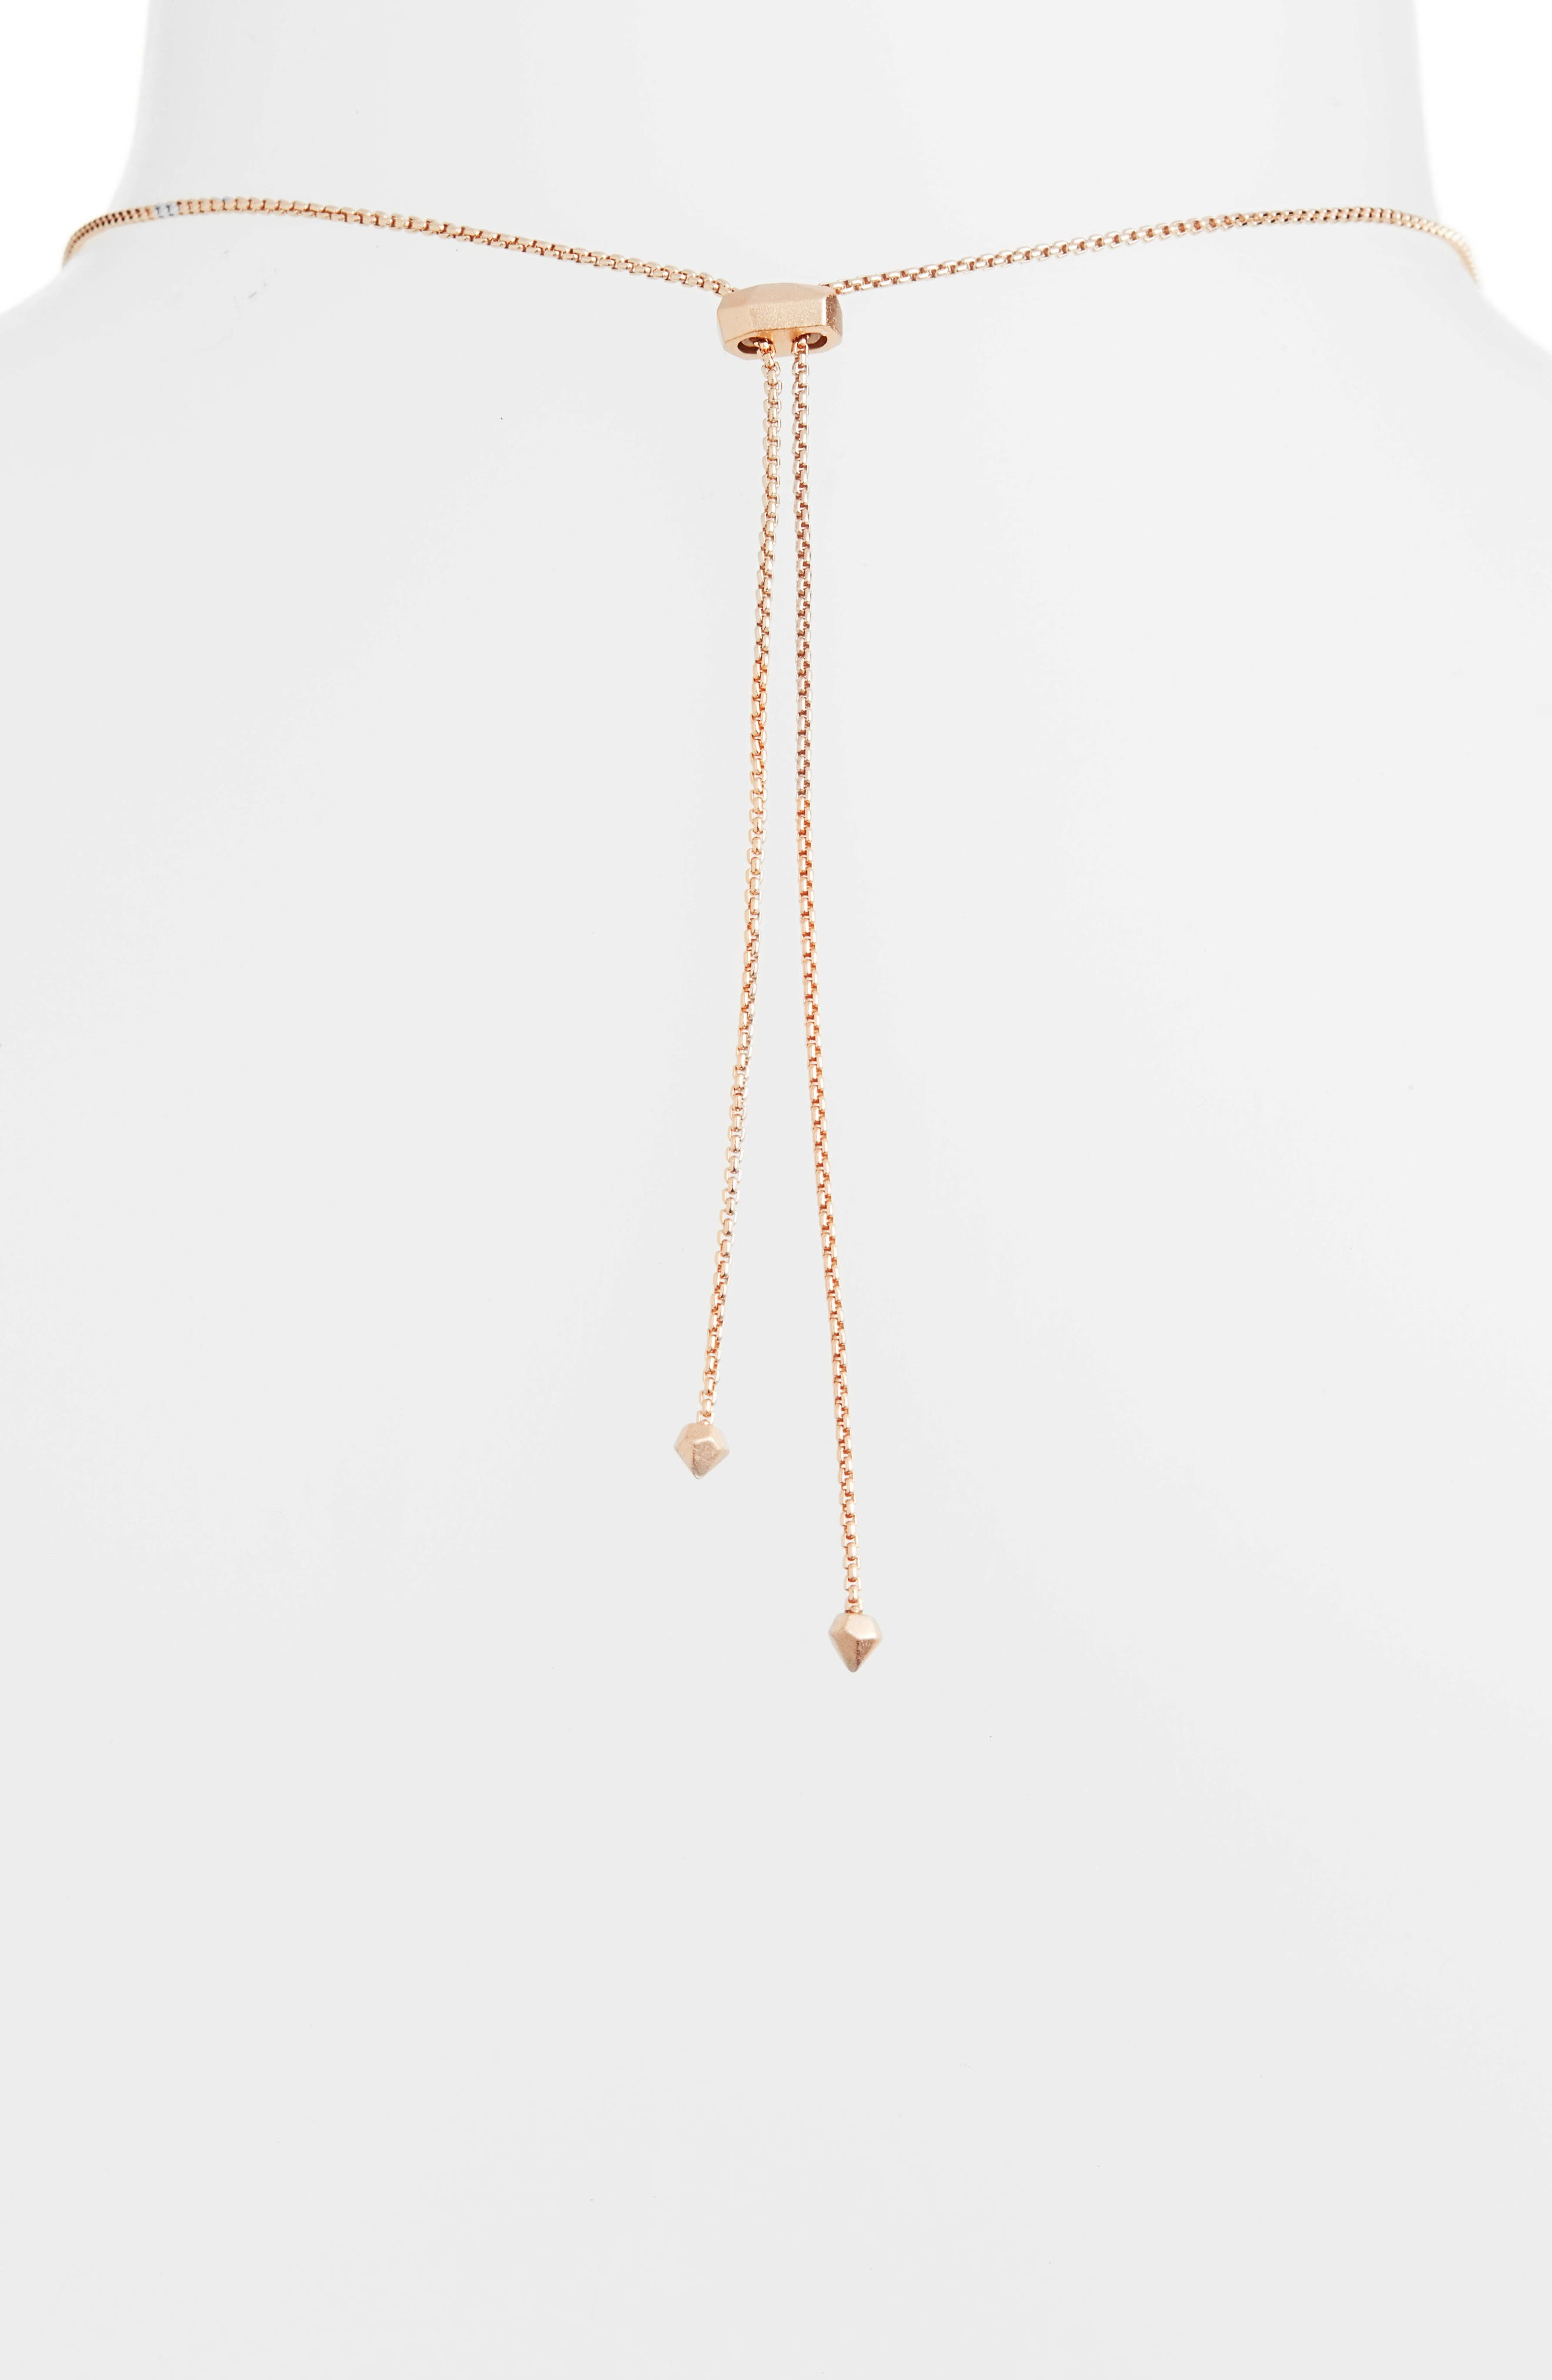 Cassidy Stone Necklace,                             Alternate thumbnail 4, color,                             Lilac Mop/ Rose Gold